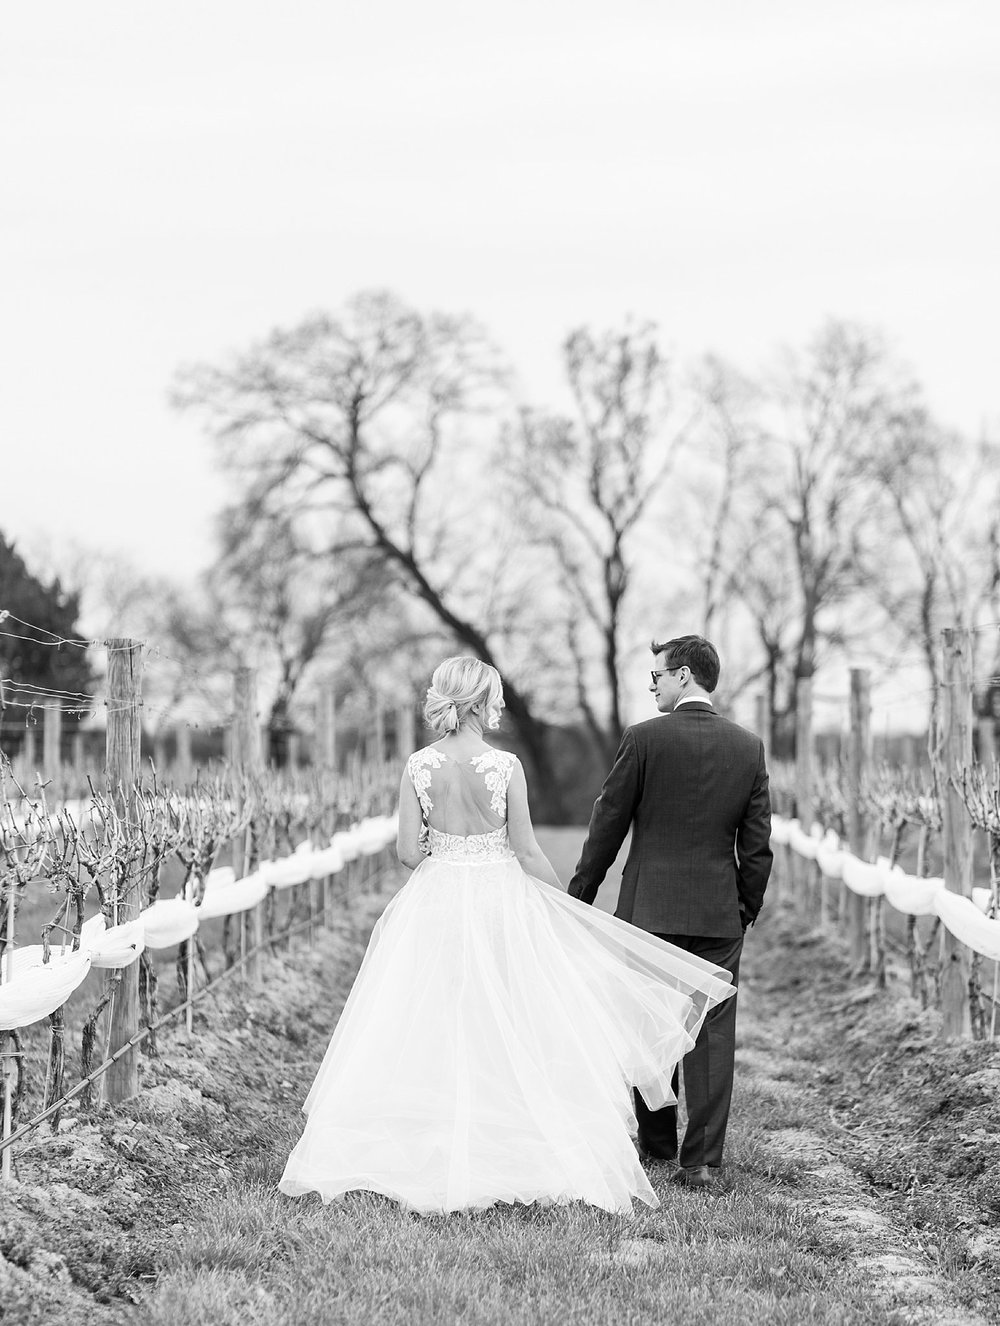 Virginia wedding at Upper Shirley Vineyards - Meghan + Jim